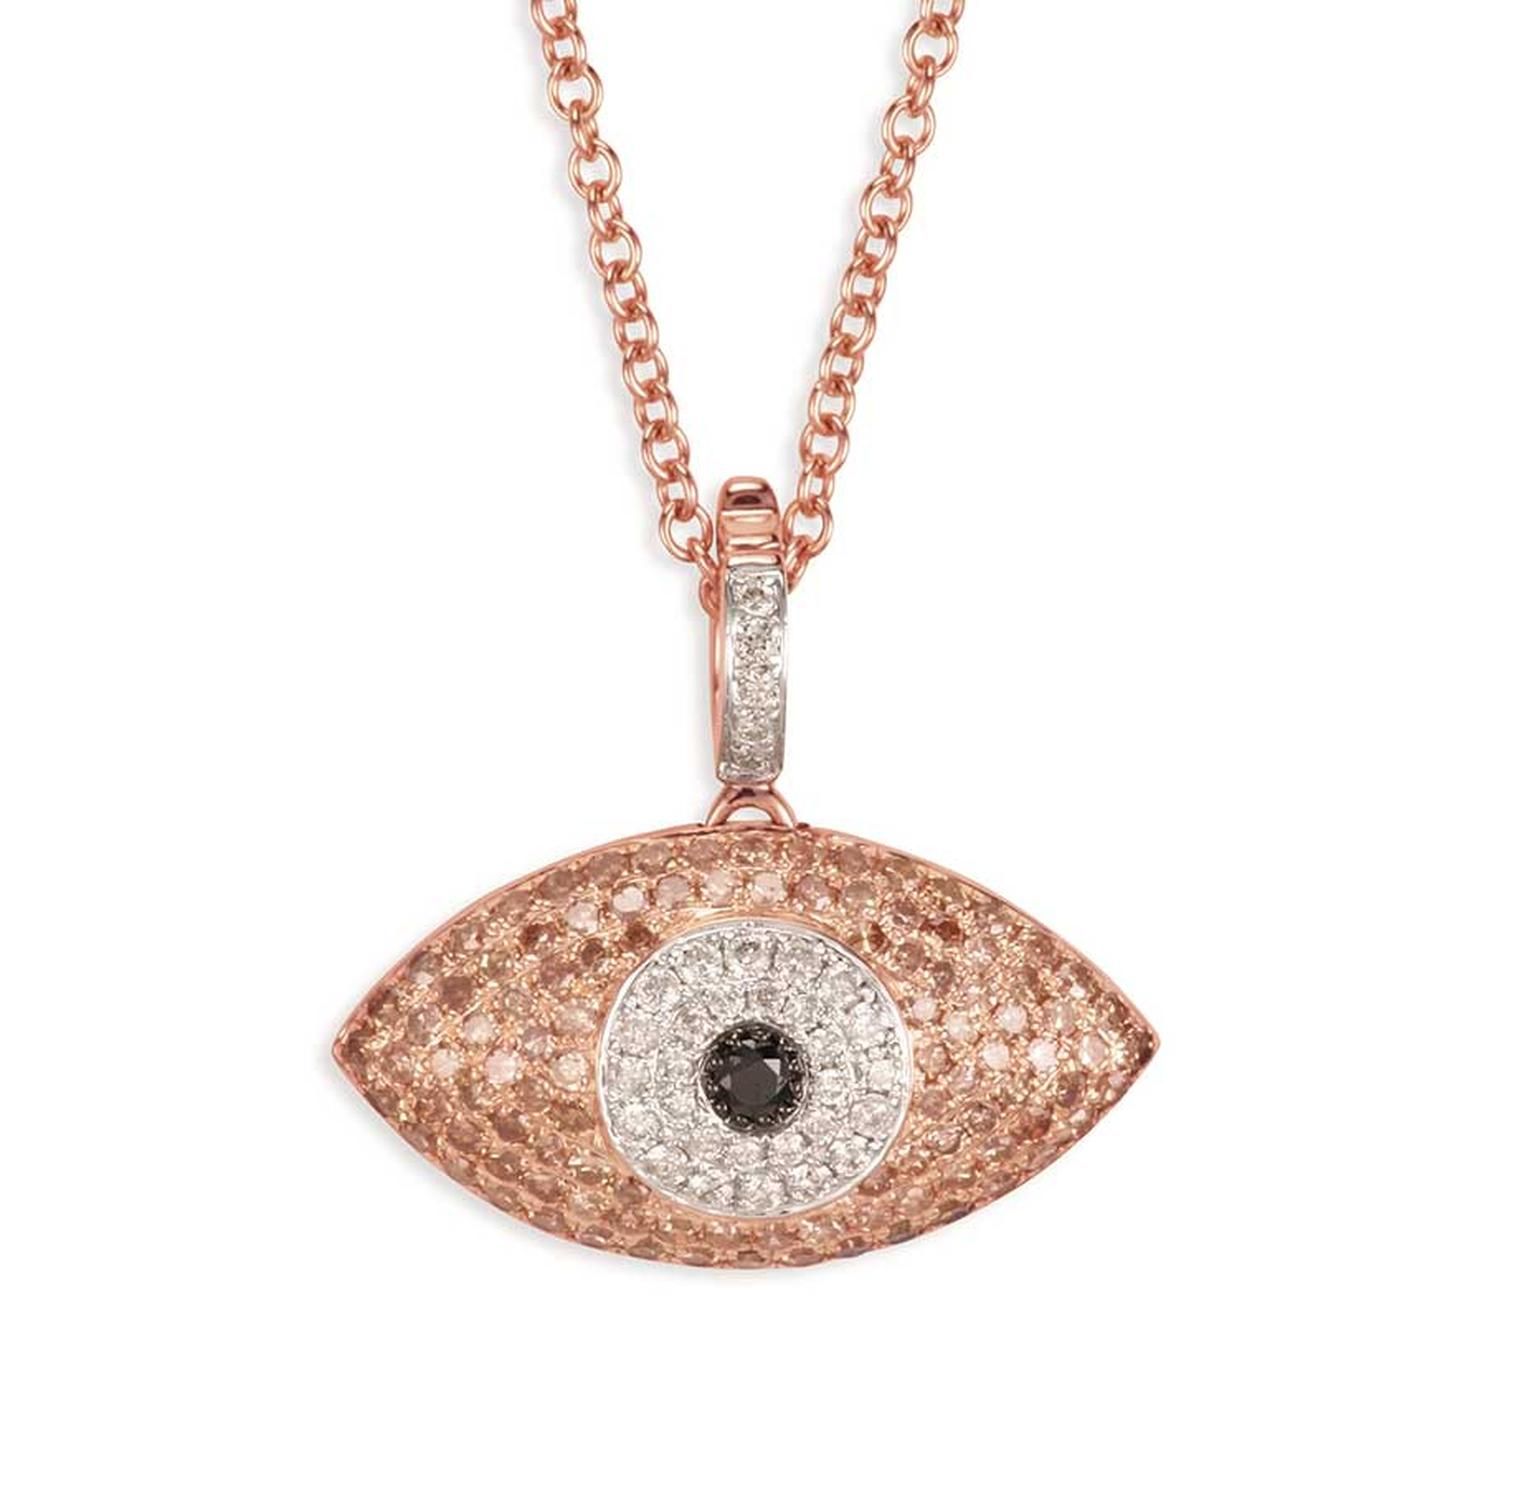 Sydney Evan Puffy Evil Eye necklace in rose gold with pavé champagne, black and white diamonds.